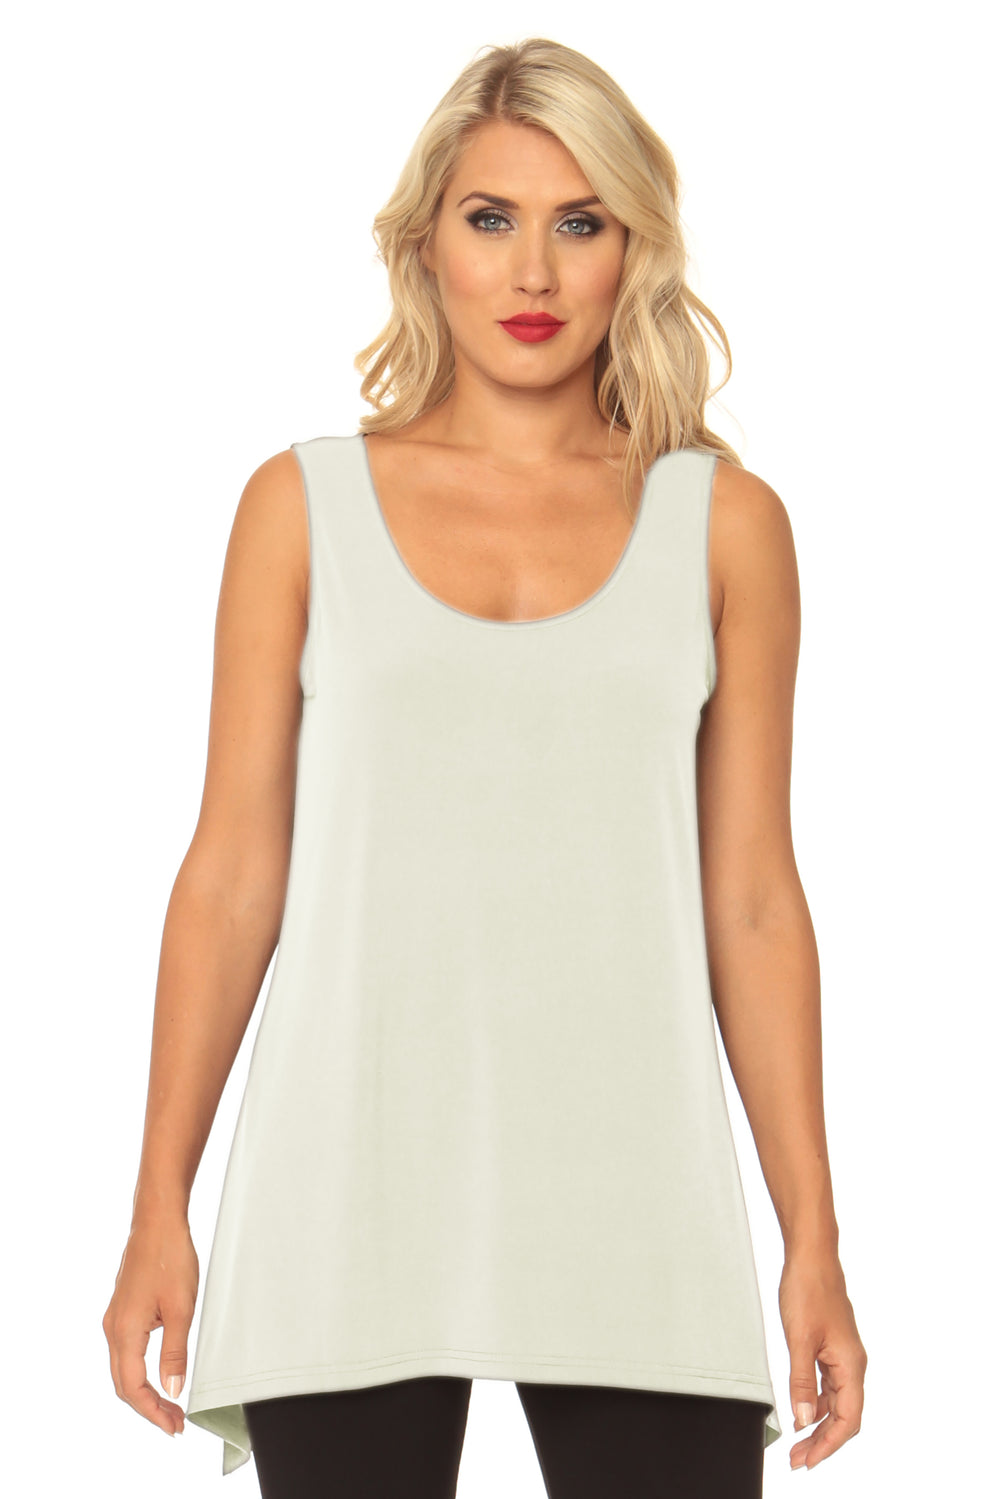 Willow Reversible Tank - Wear Me Forever Neutral Colors